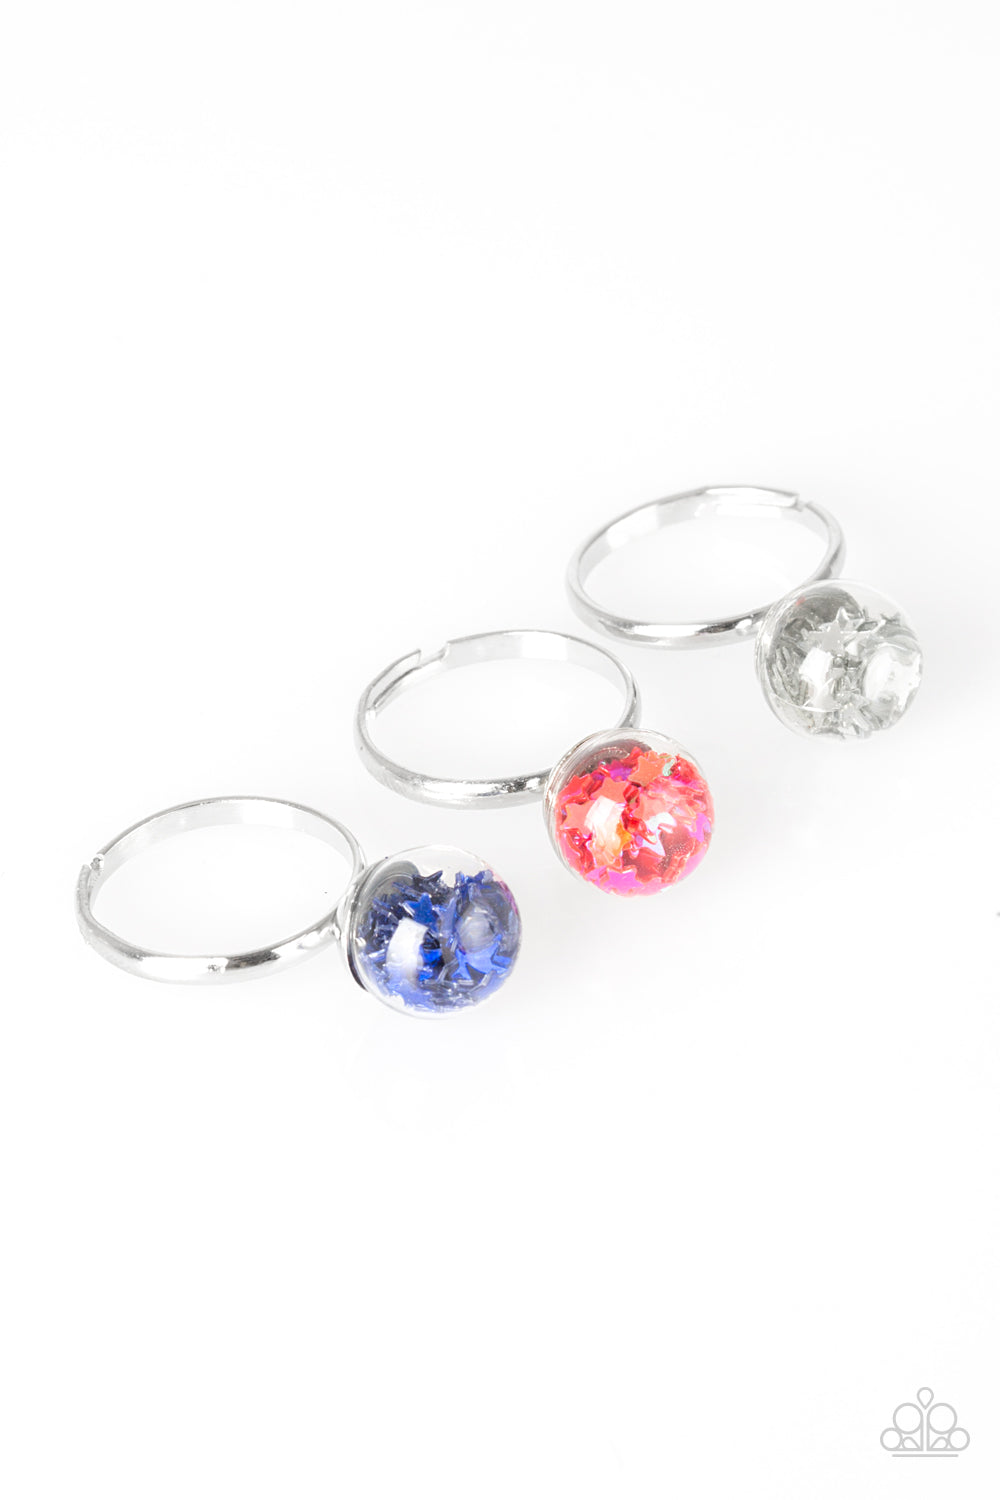 Star Globe Rings - Paparazzi Starlet Shimmer - Pink Dragon Jewels